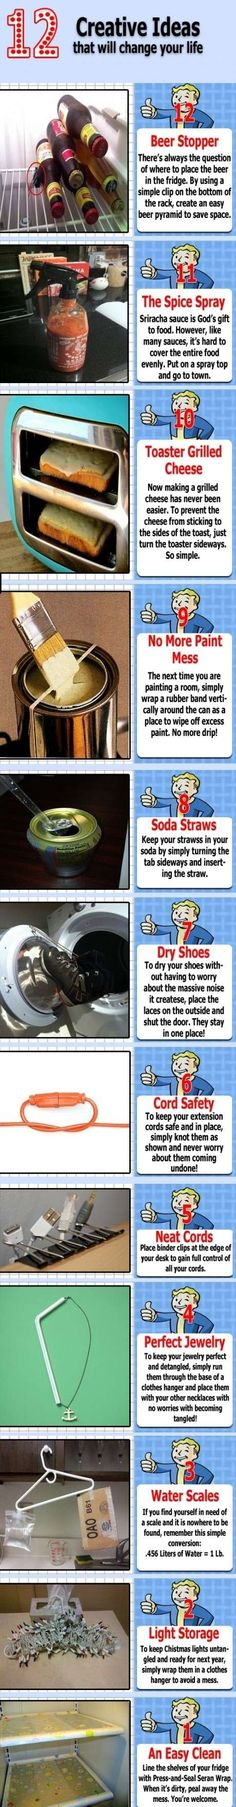 """12 LIFE HACKS"" - Good simple ideas. Done a couple similar to this before, but not all :)"